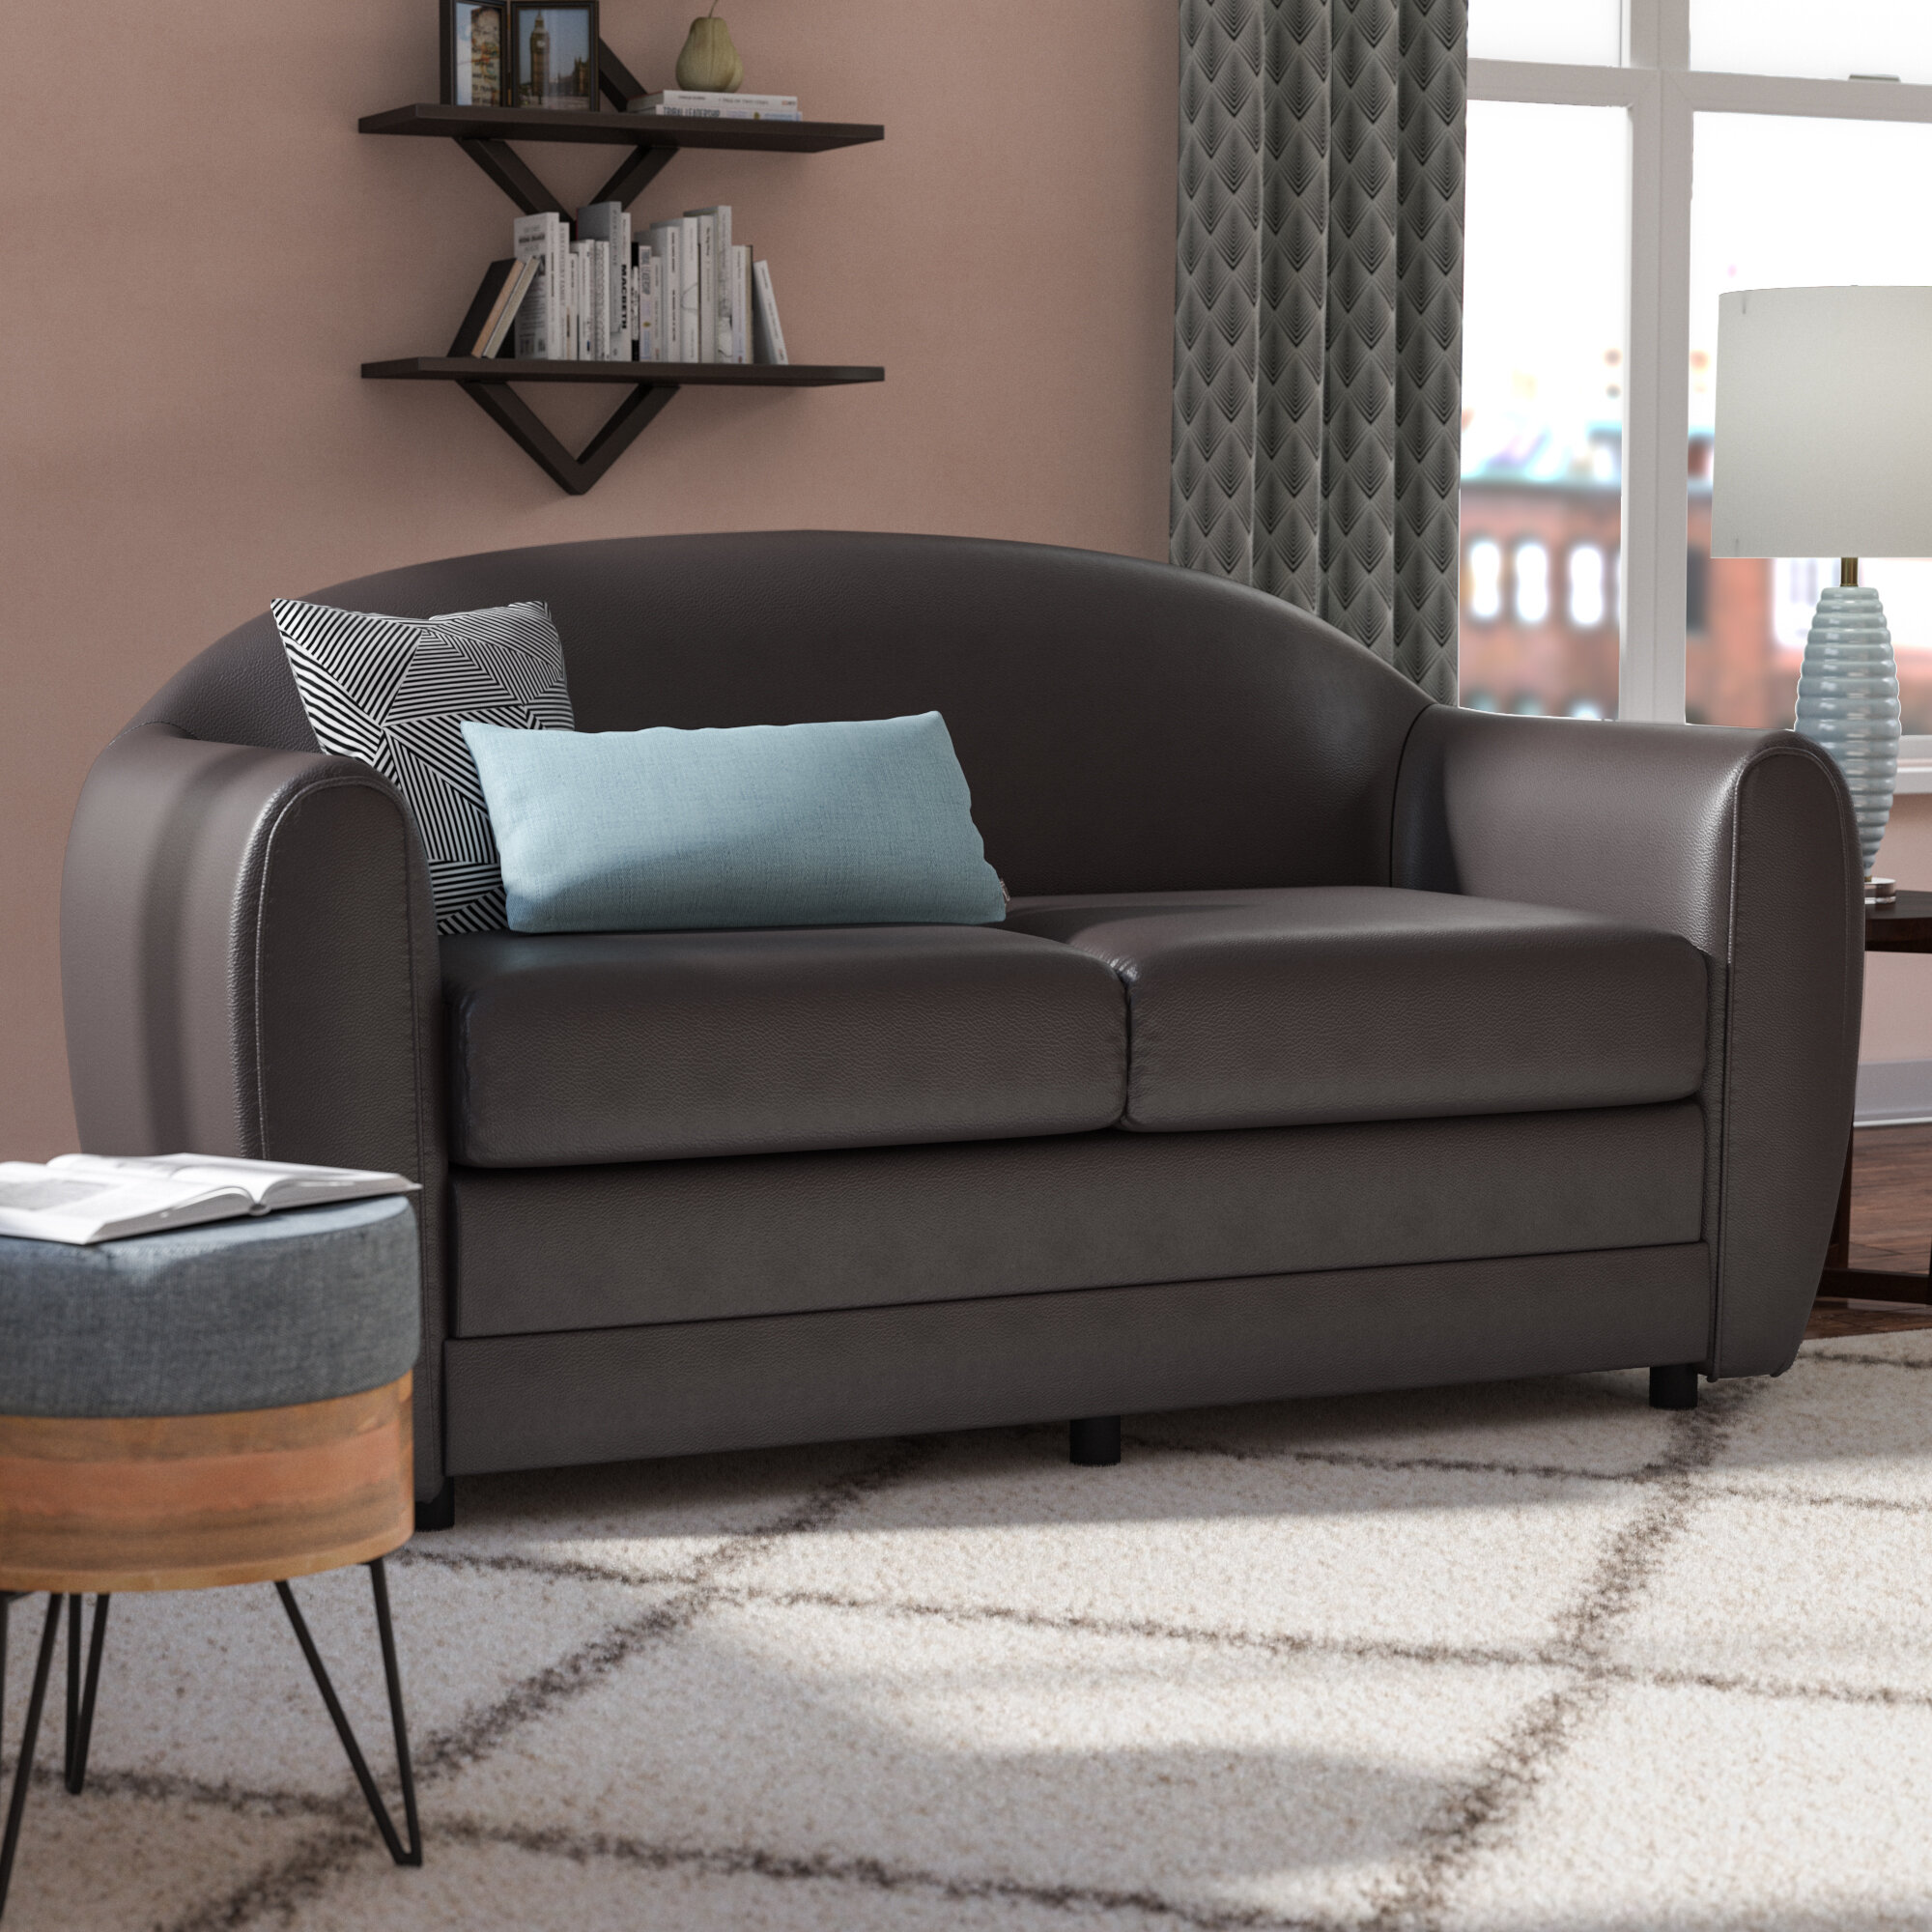 with ashley trundle sofa loveseat storage rv pull bed couch set sleeper spaces tag size tags out small for of full futon loveseats ikea flip fold